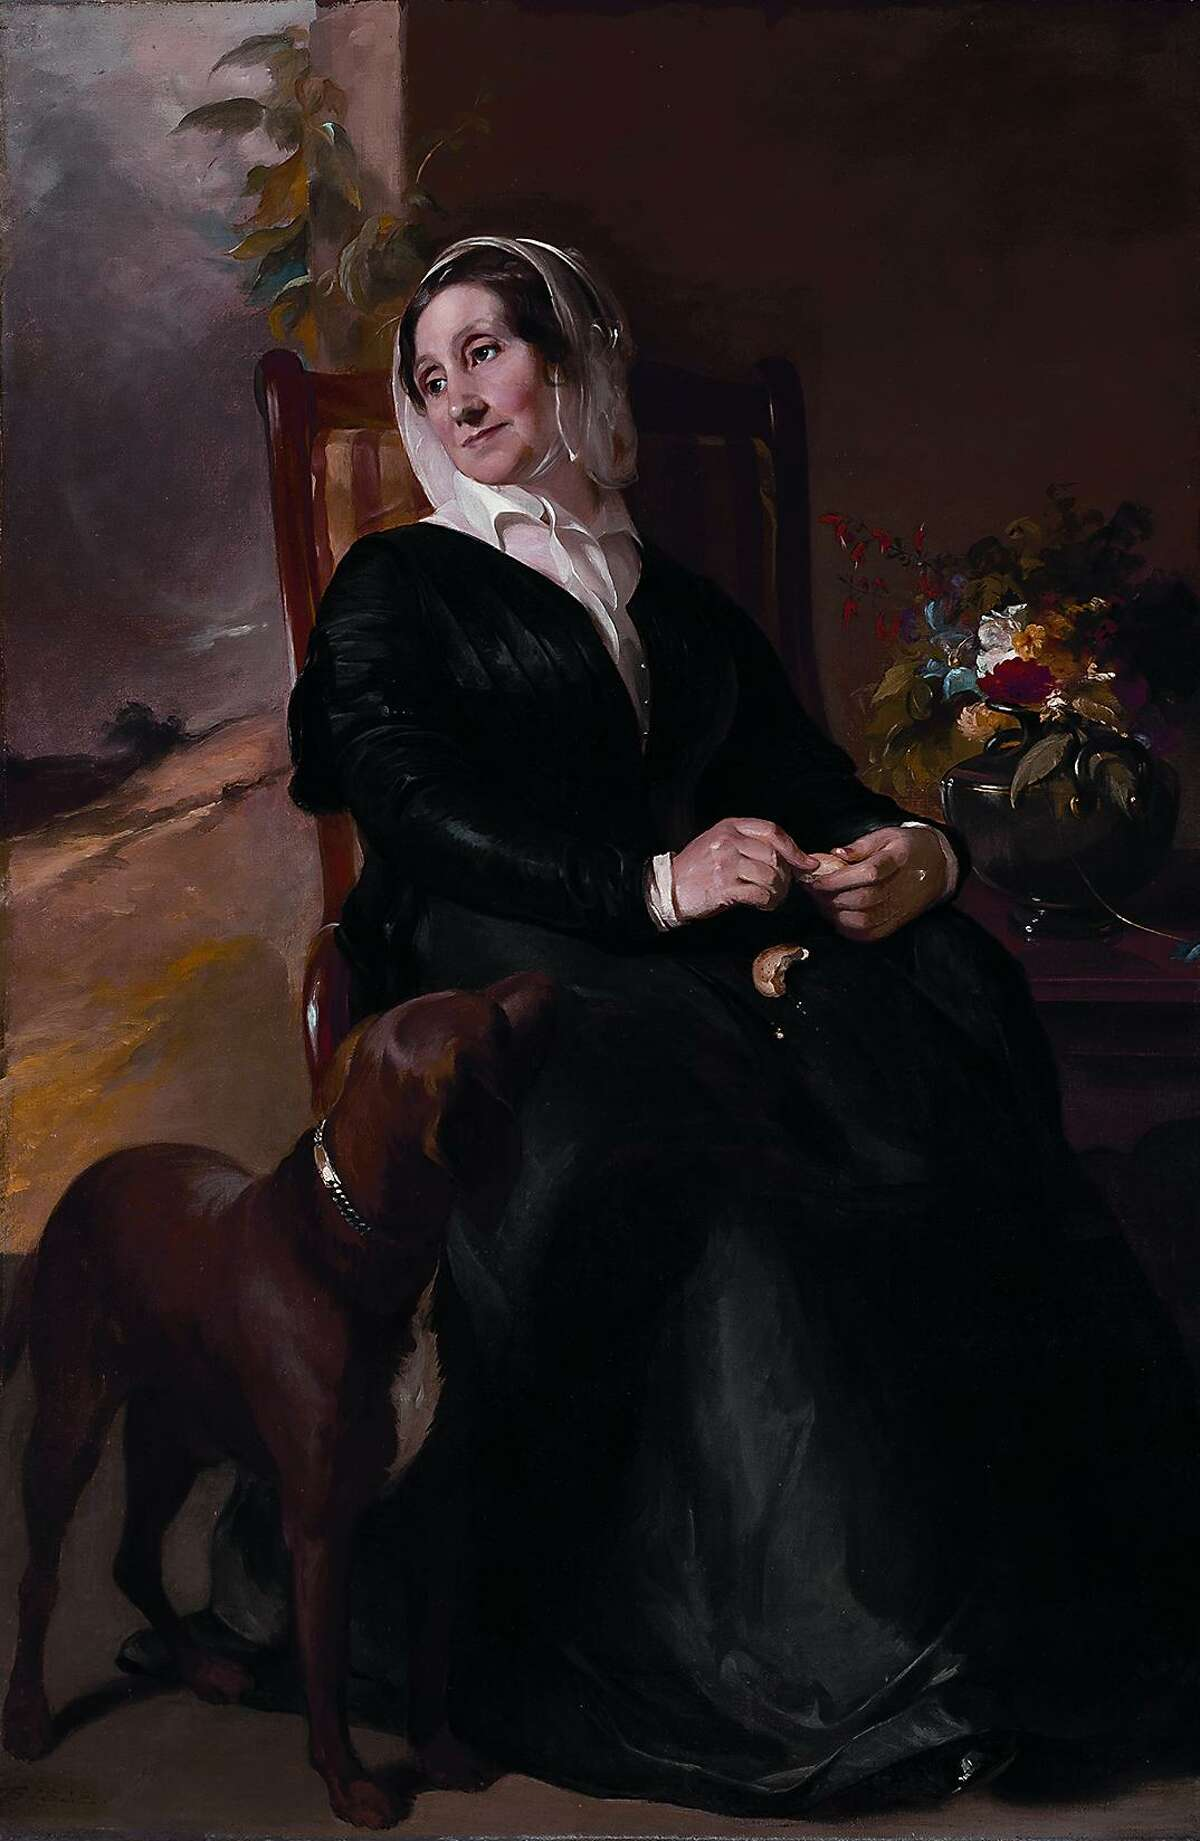 Thomas Sully, Portrait of Sarah Sully and her Dog, Ponto, 1848, oil on canvas, 86.57.1